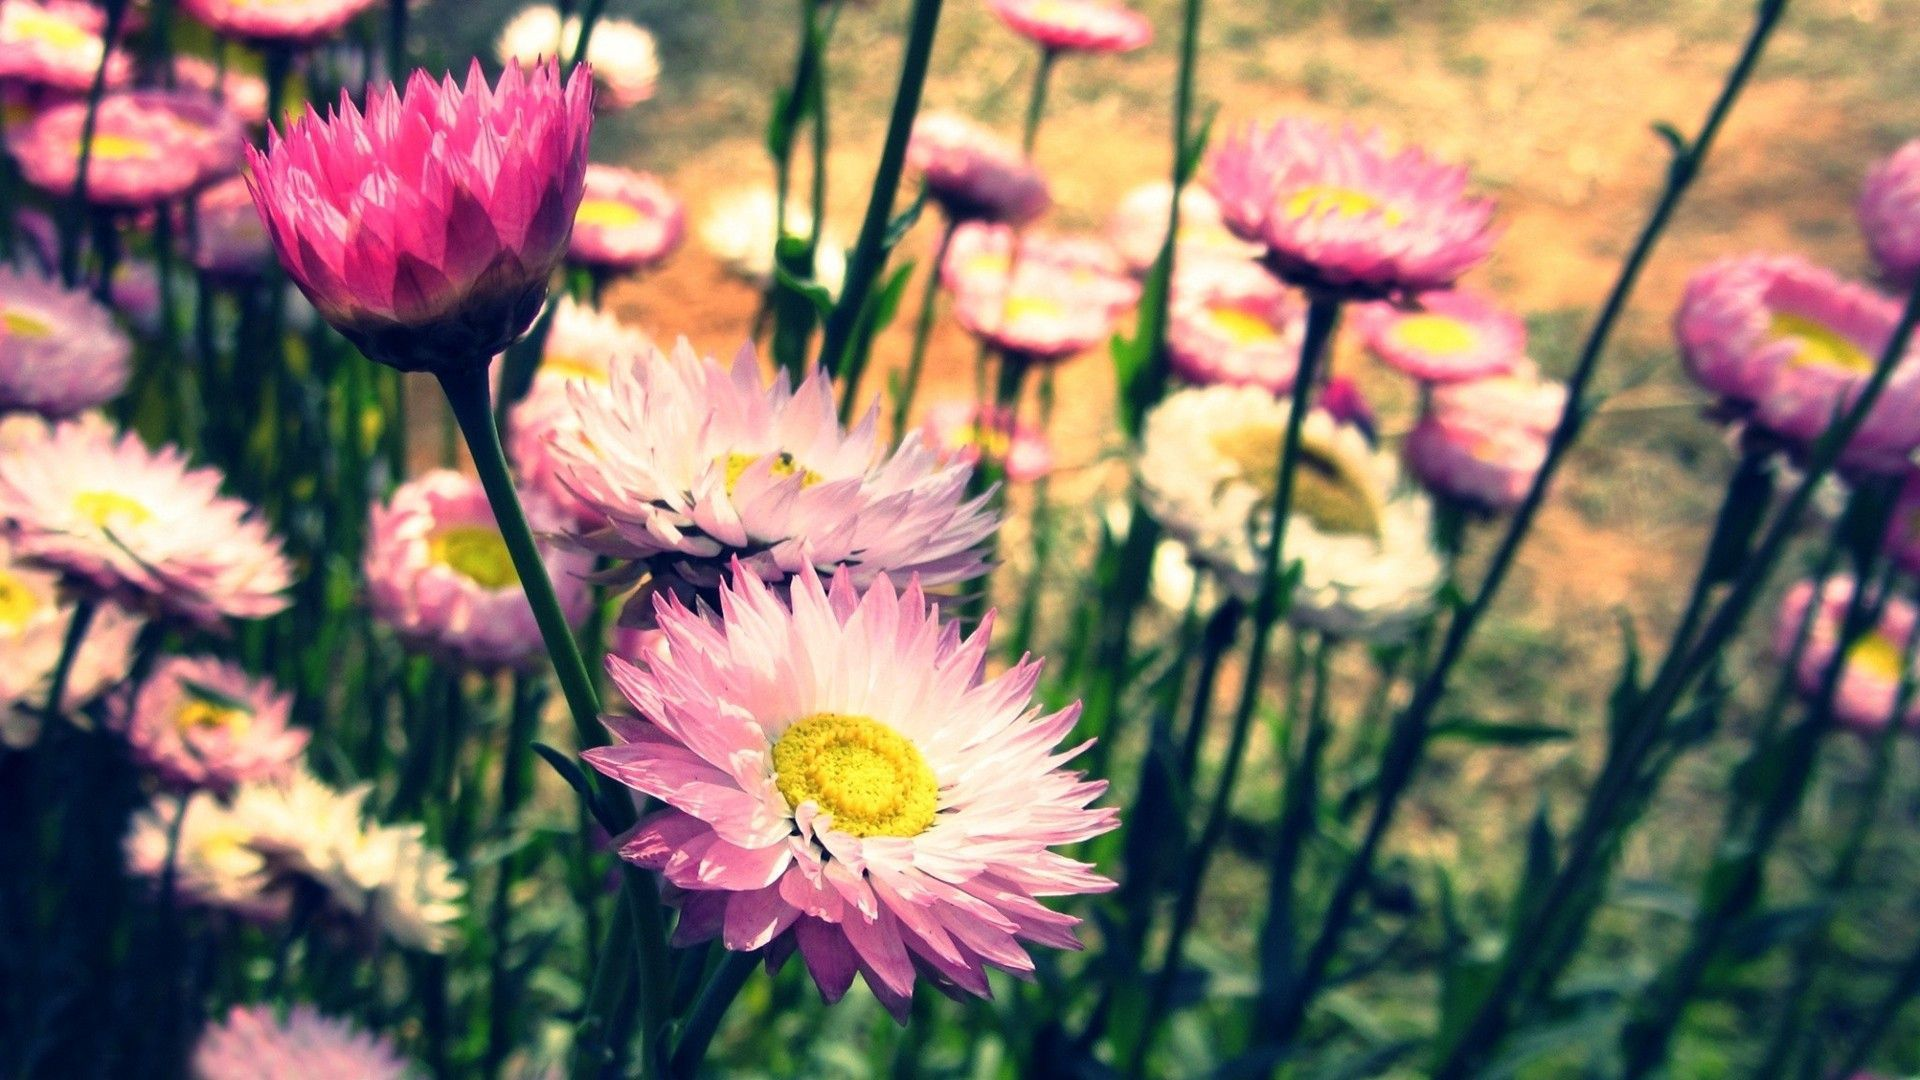 Vintage Flowers For Desktop Background